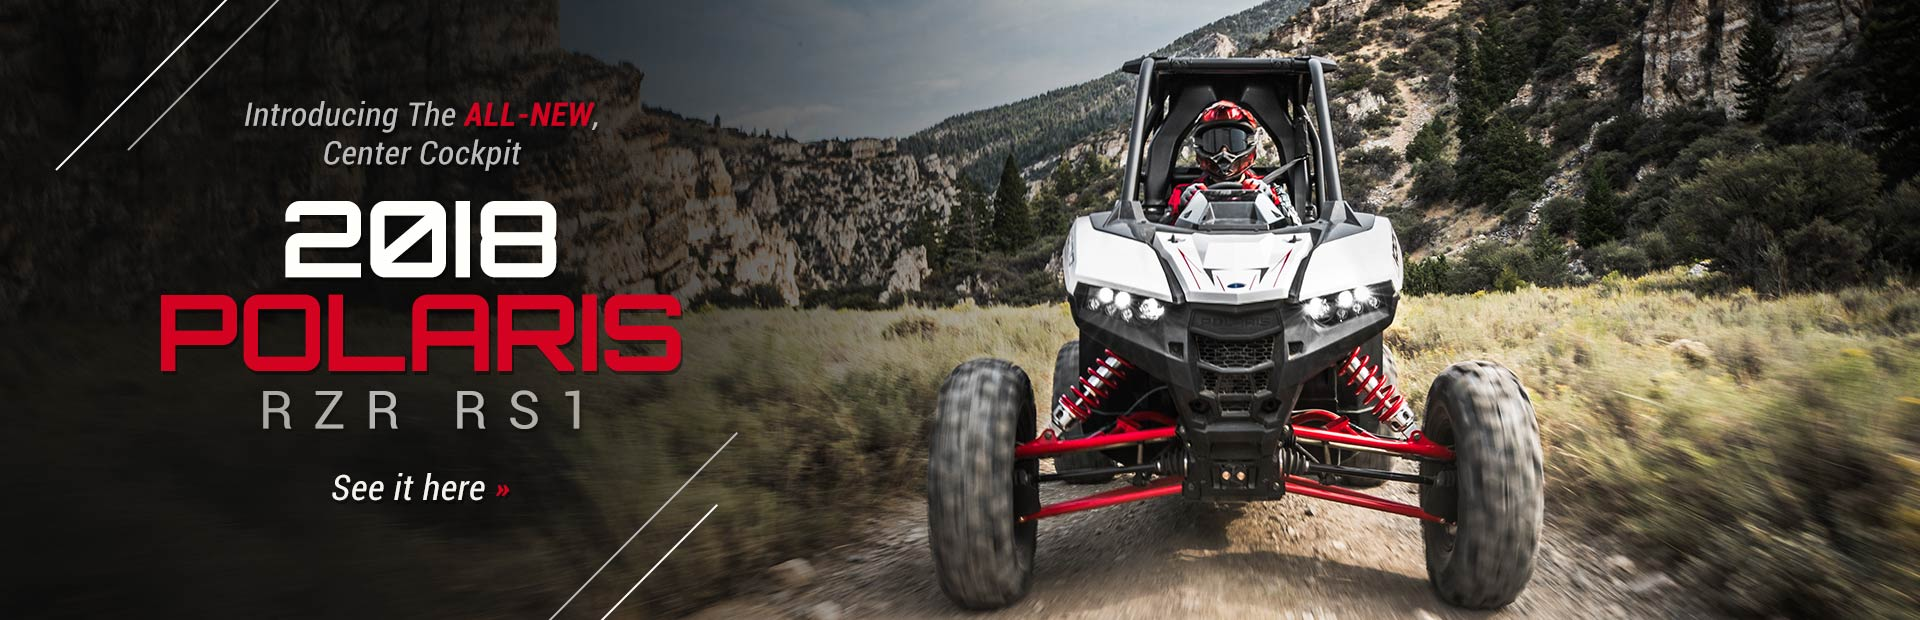 Introducing The All-New, Center Cockpit 2018 Polaris RZR RS1: Click here to view the model.